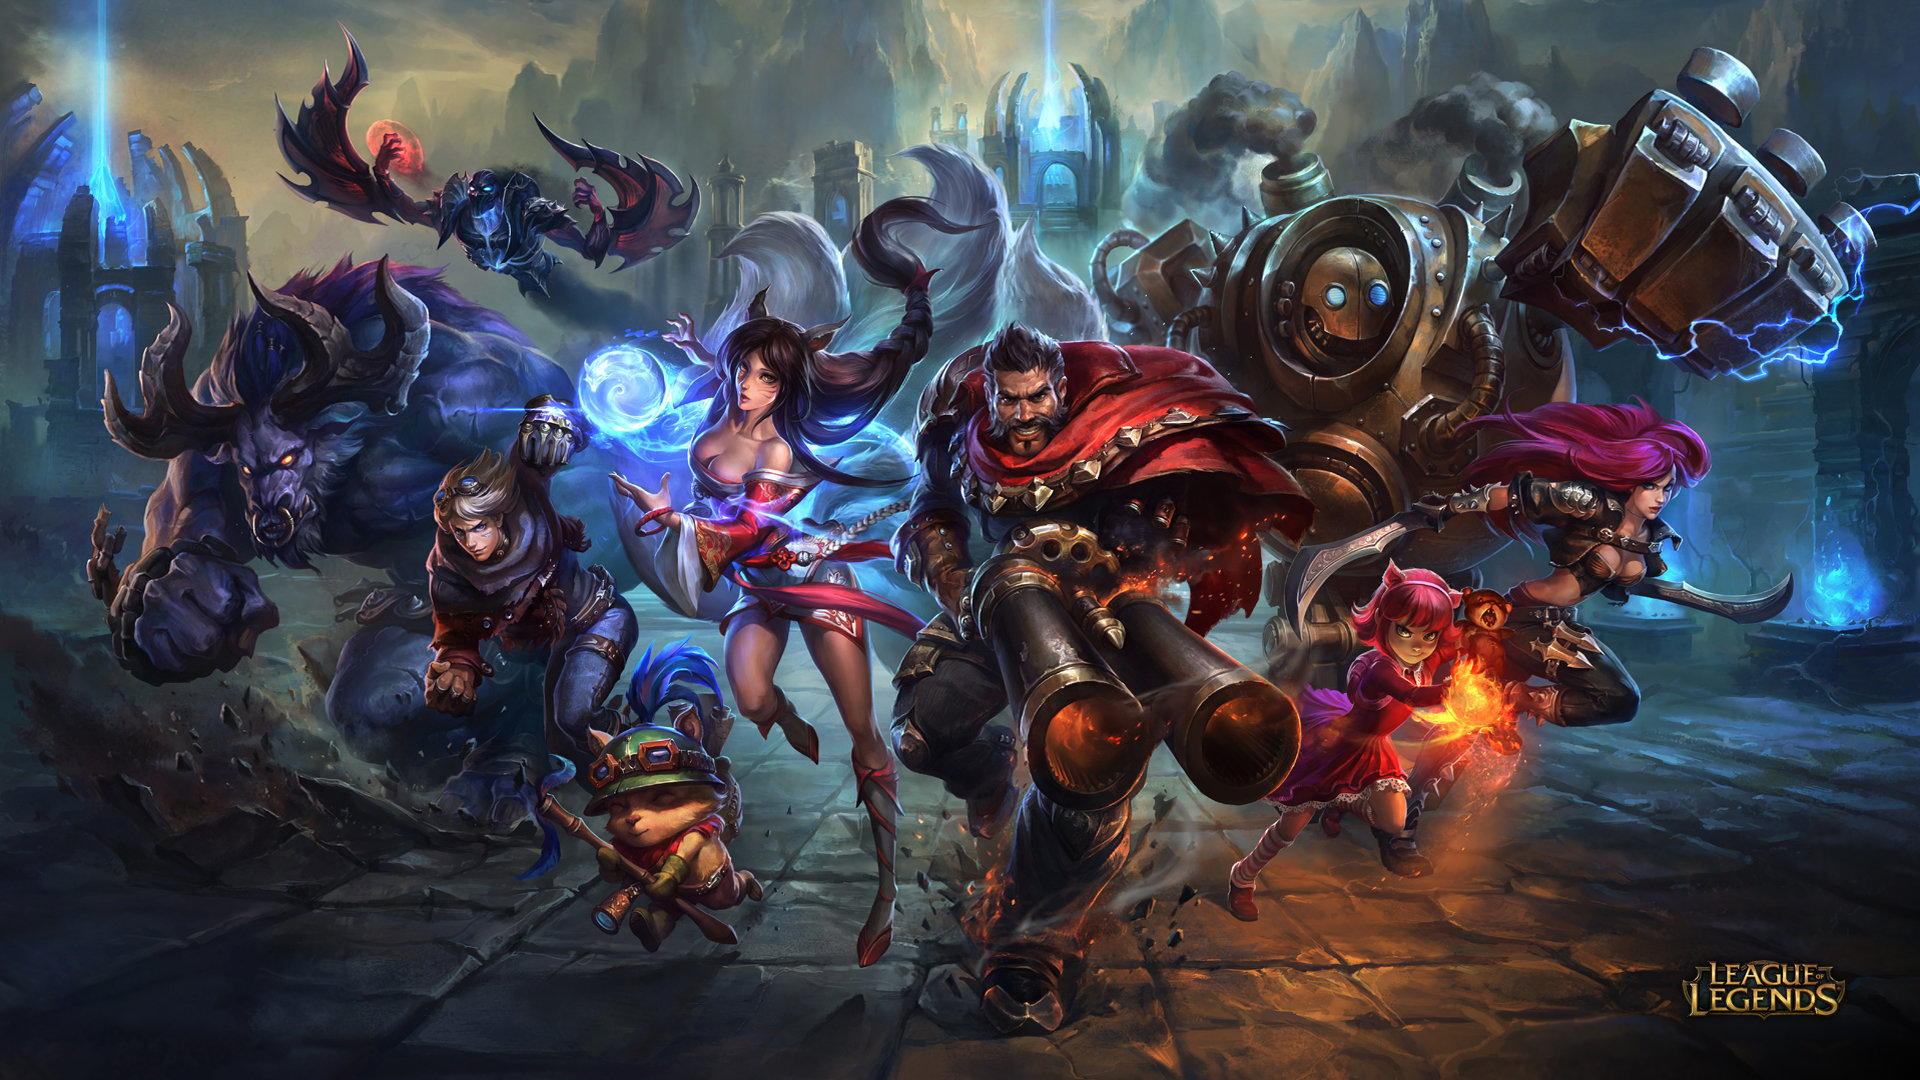 Image result for images of league of legends